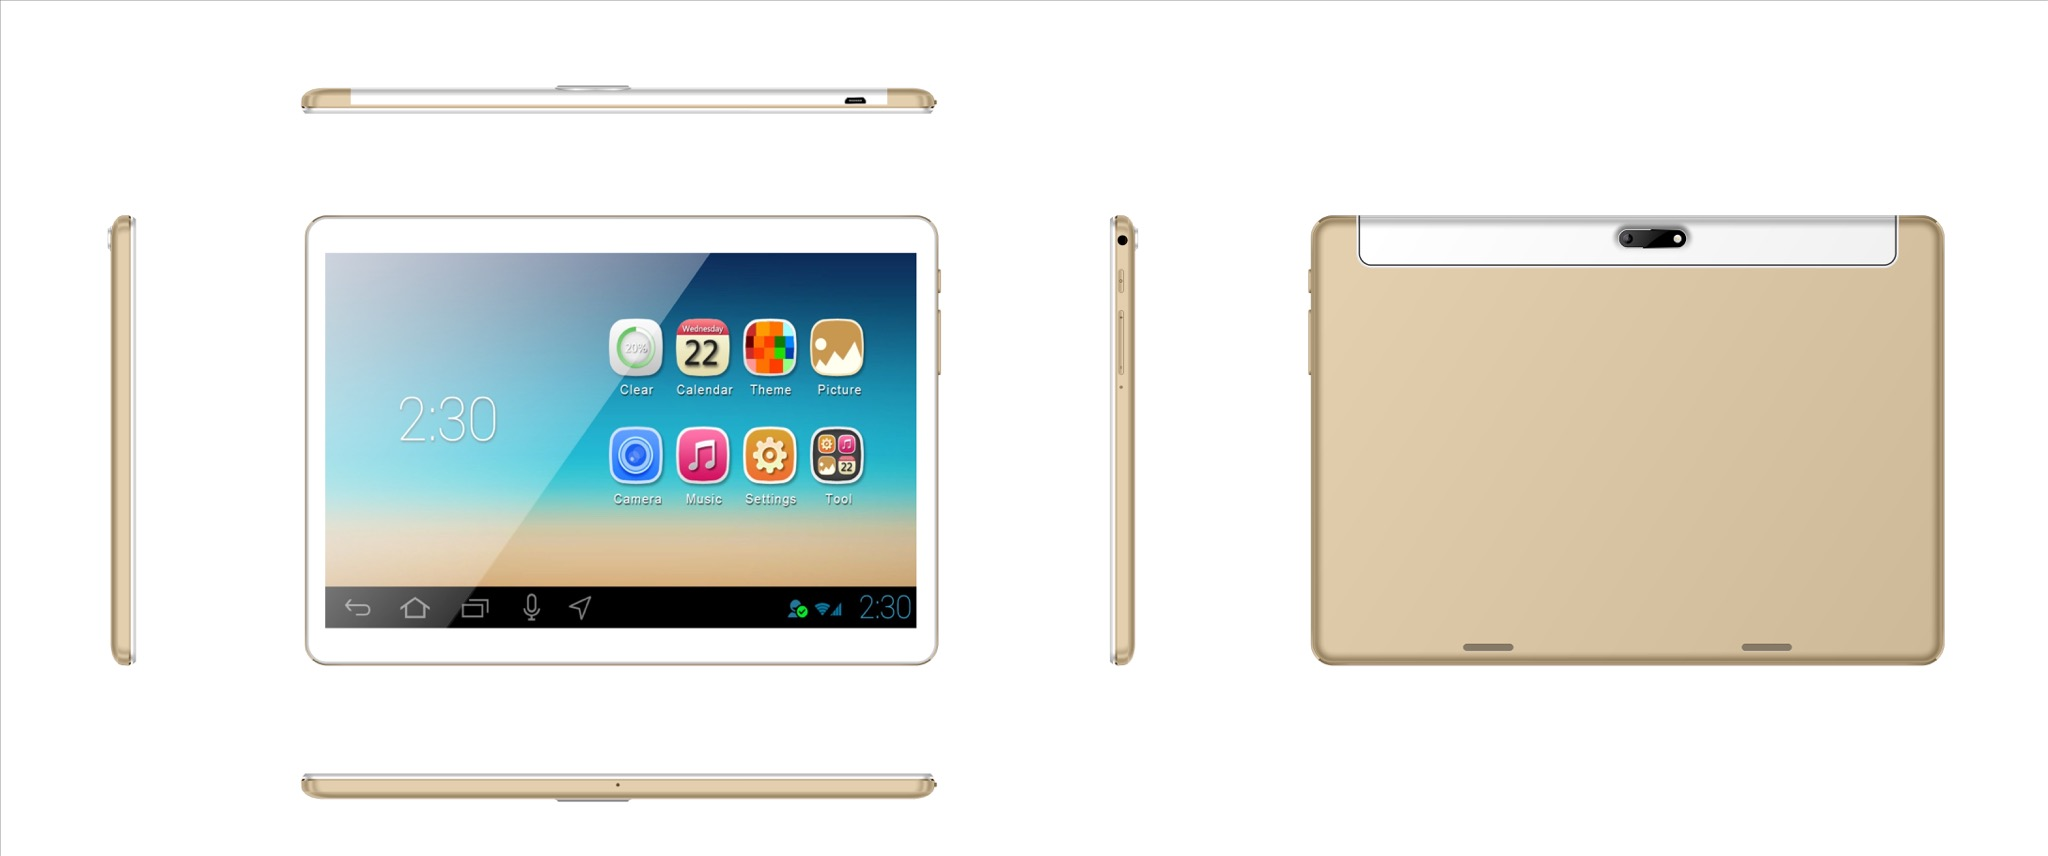 Tablet PC 9.6inch 8001280 Pixels IPS Android 6.0